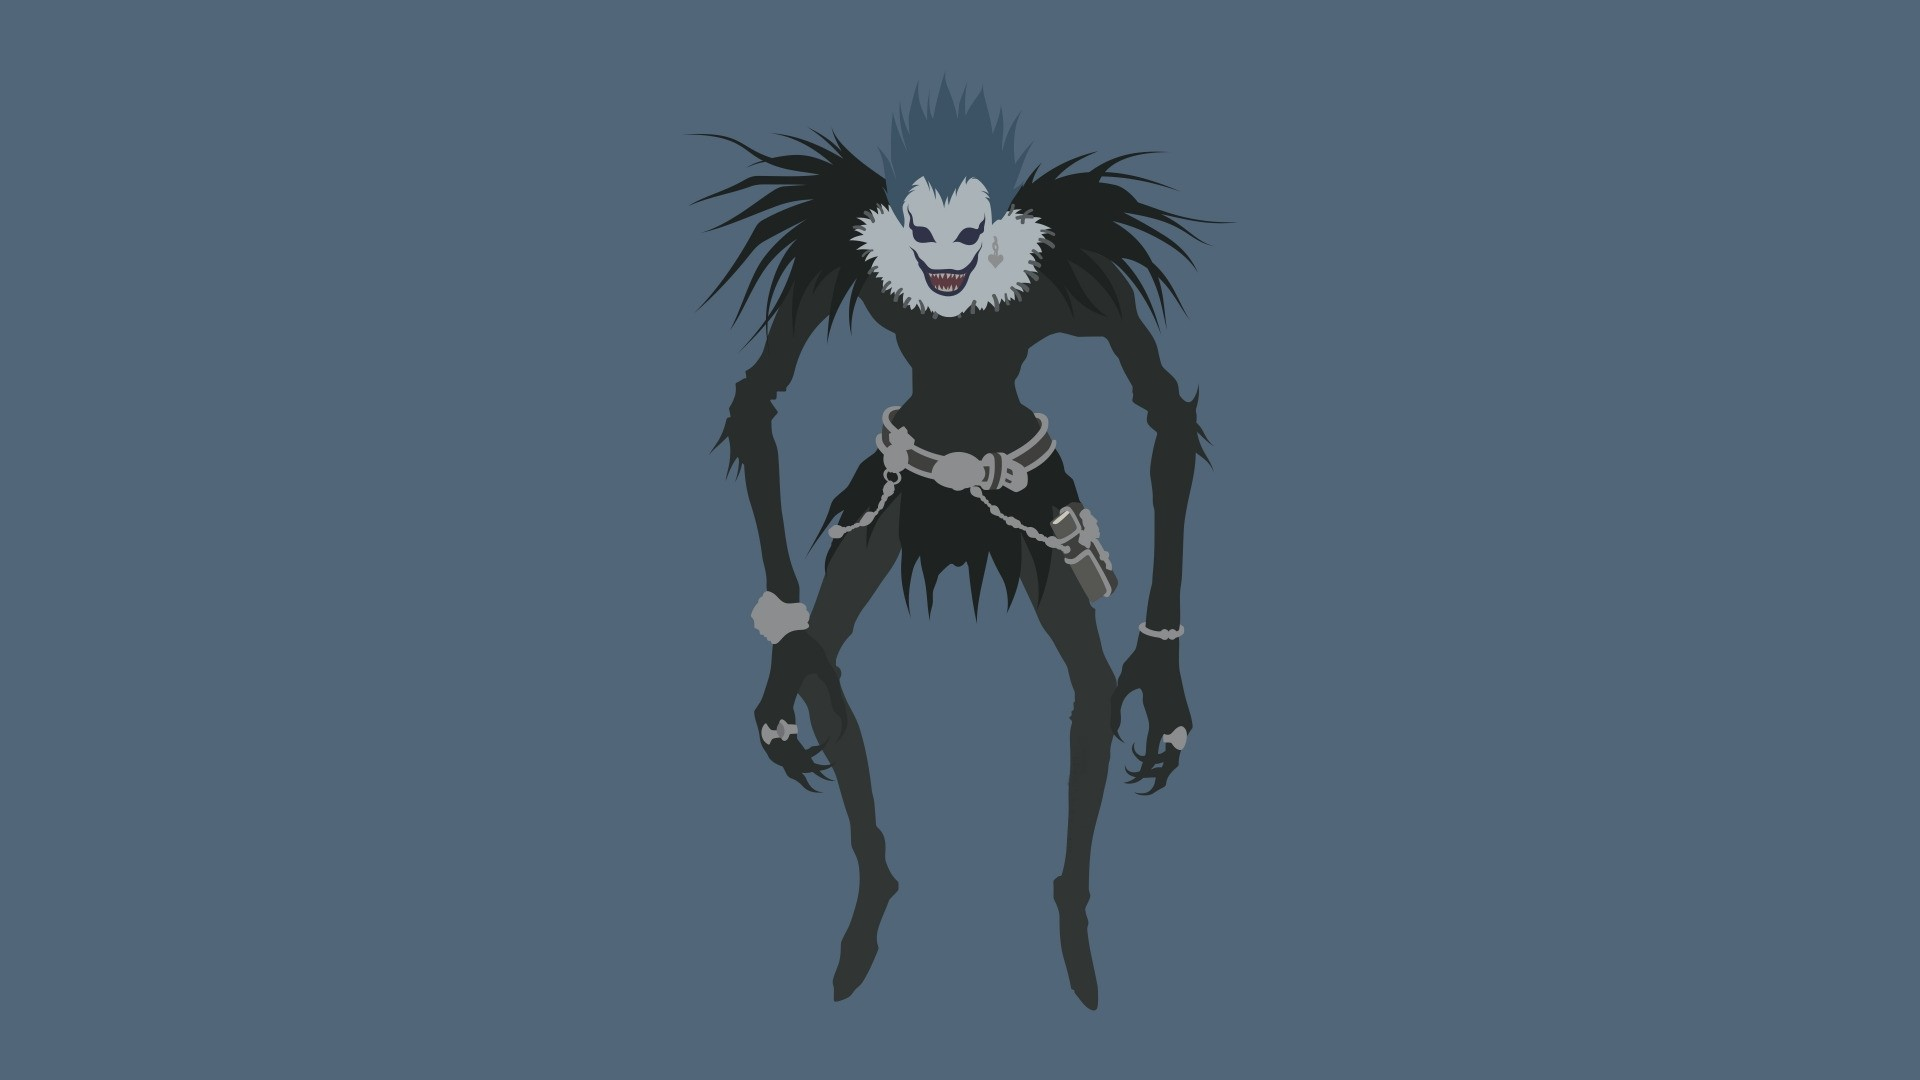 Ryuk download free wallpaper for pc in hd